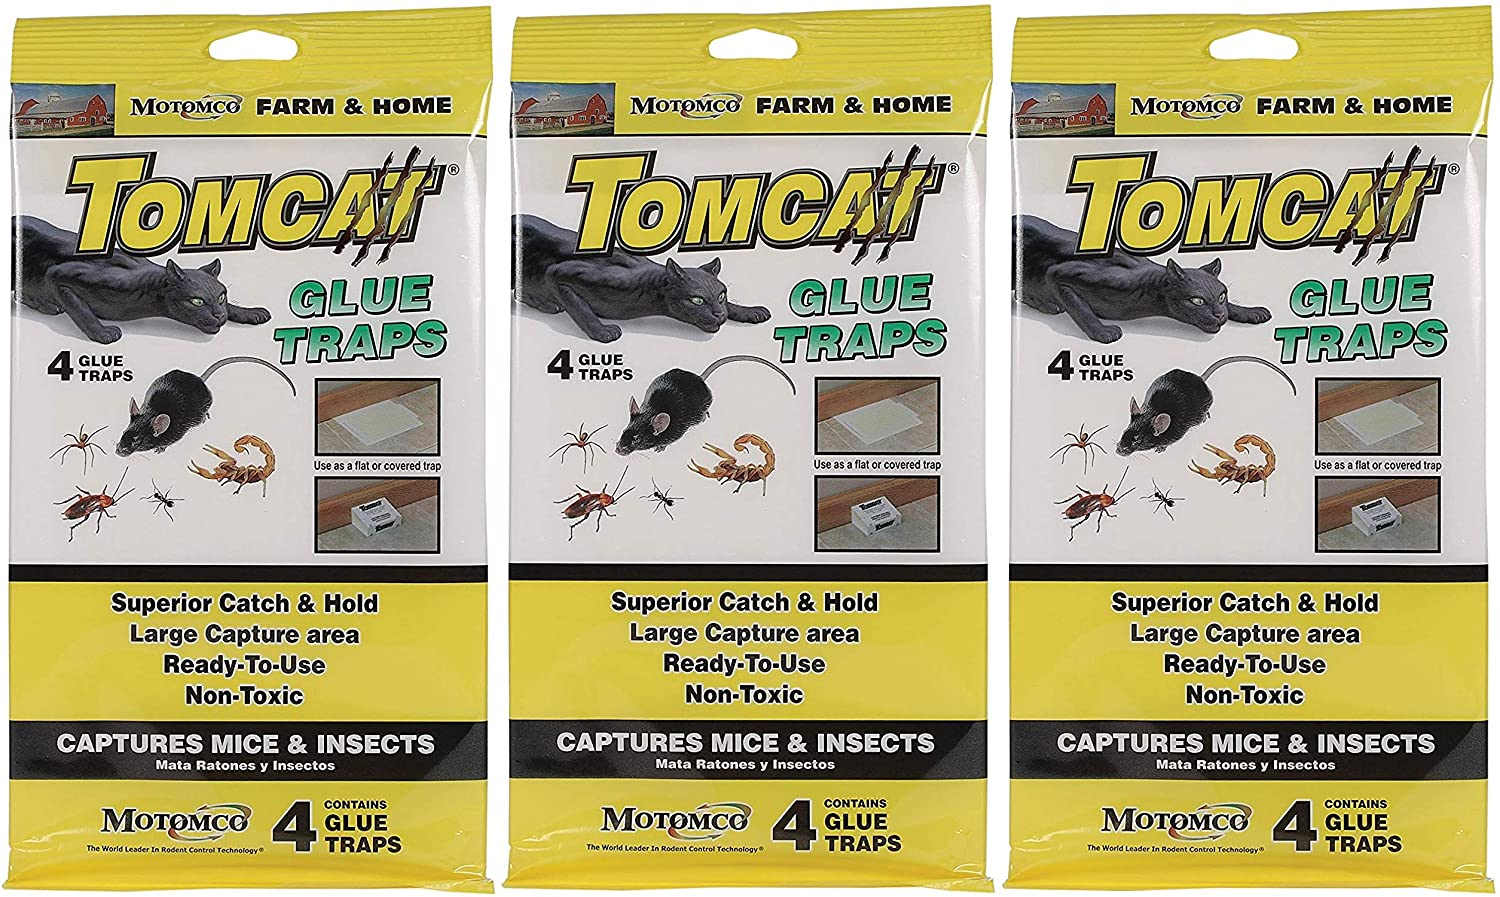 Motomco 12 Pack of Tomcat Glue Traps for Mice and Insects